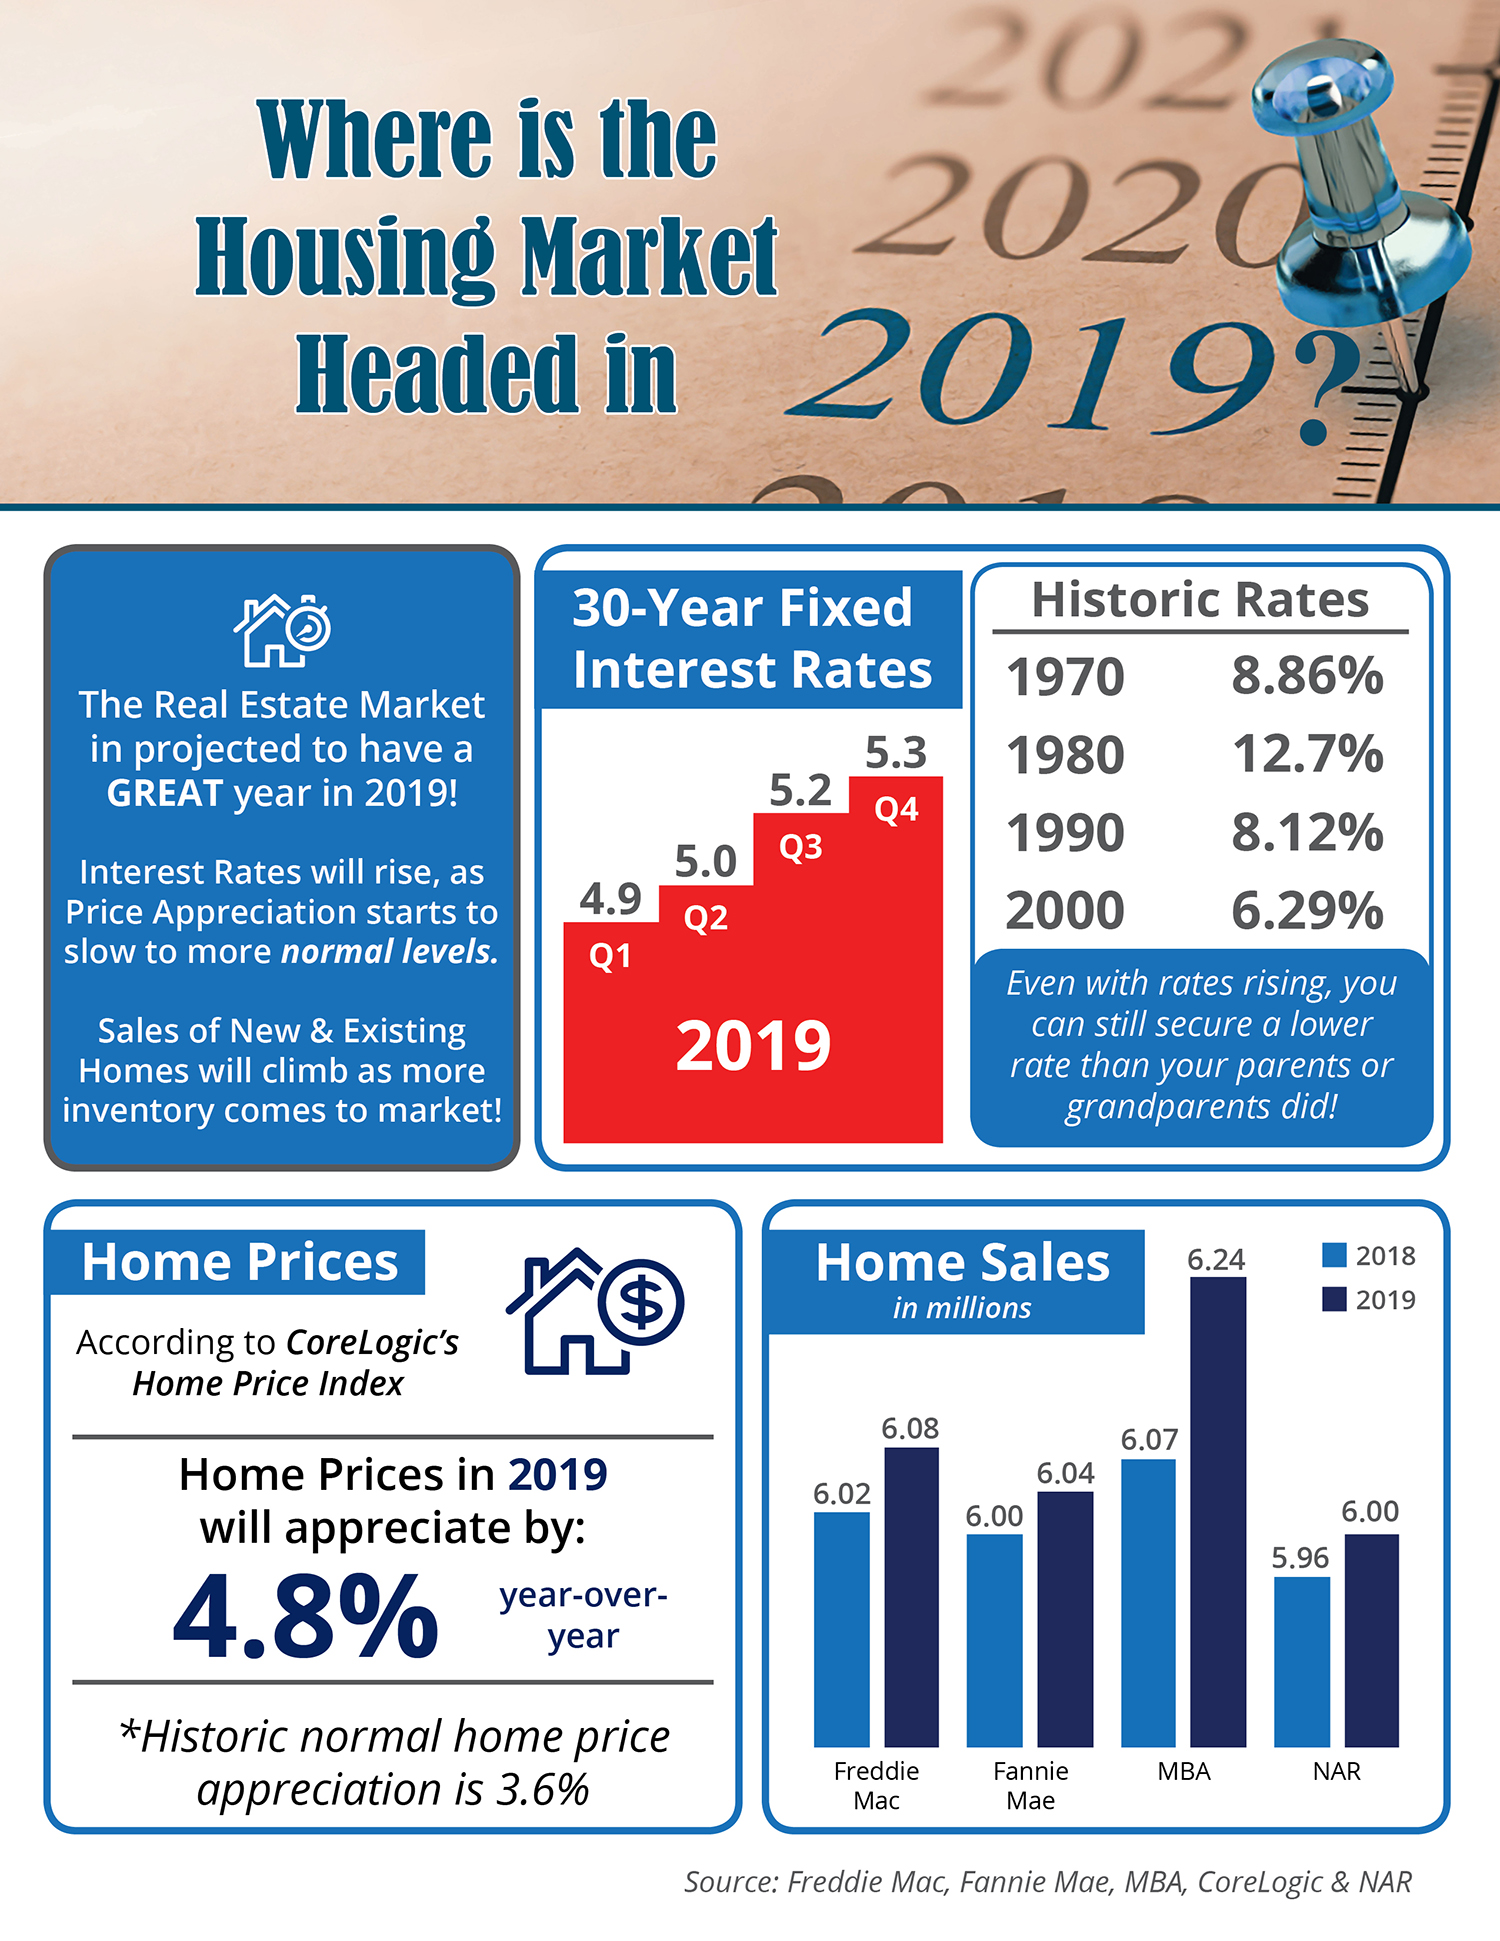 Where is the Housing Market Headed in 2019 in Charlotte and Lake Norman